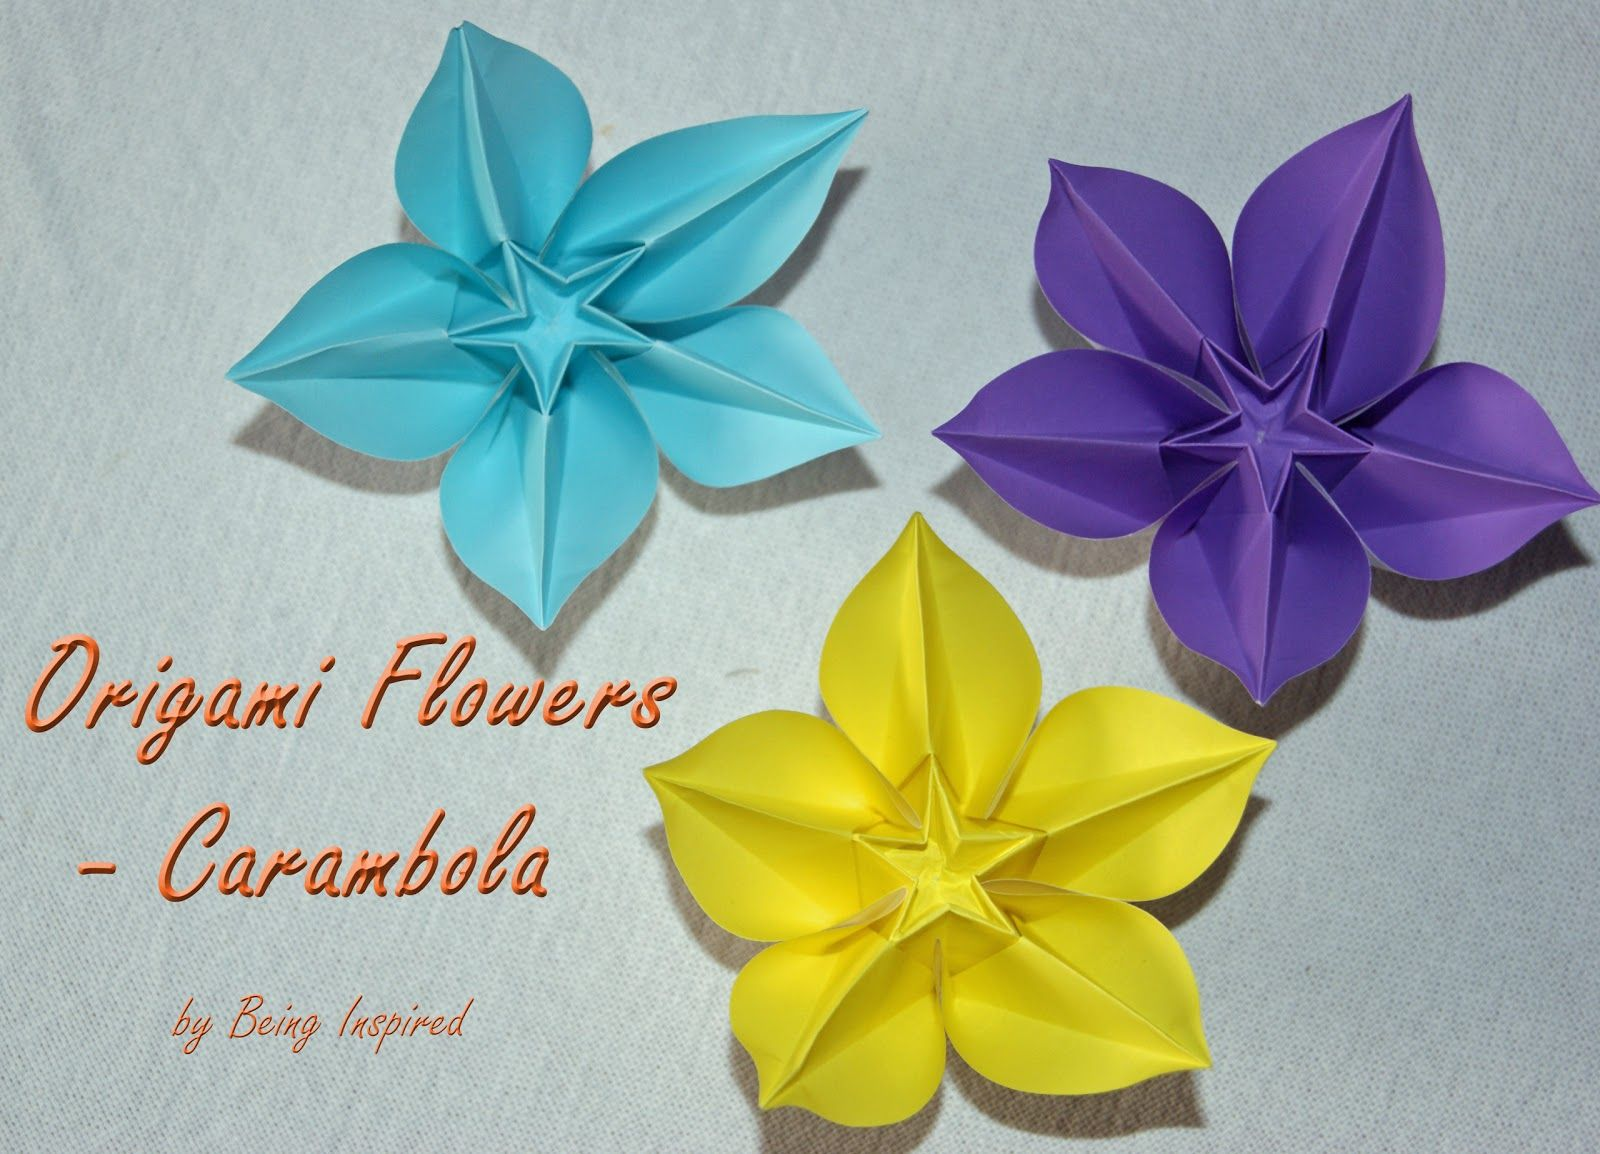 Being inspired origami carambola flowers origami flowers making origami flowers on a sunday afternoon sure what else would you be doing thanks so much for stopping by to check out my dhlflorist Image collections